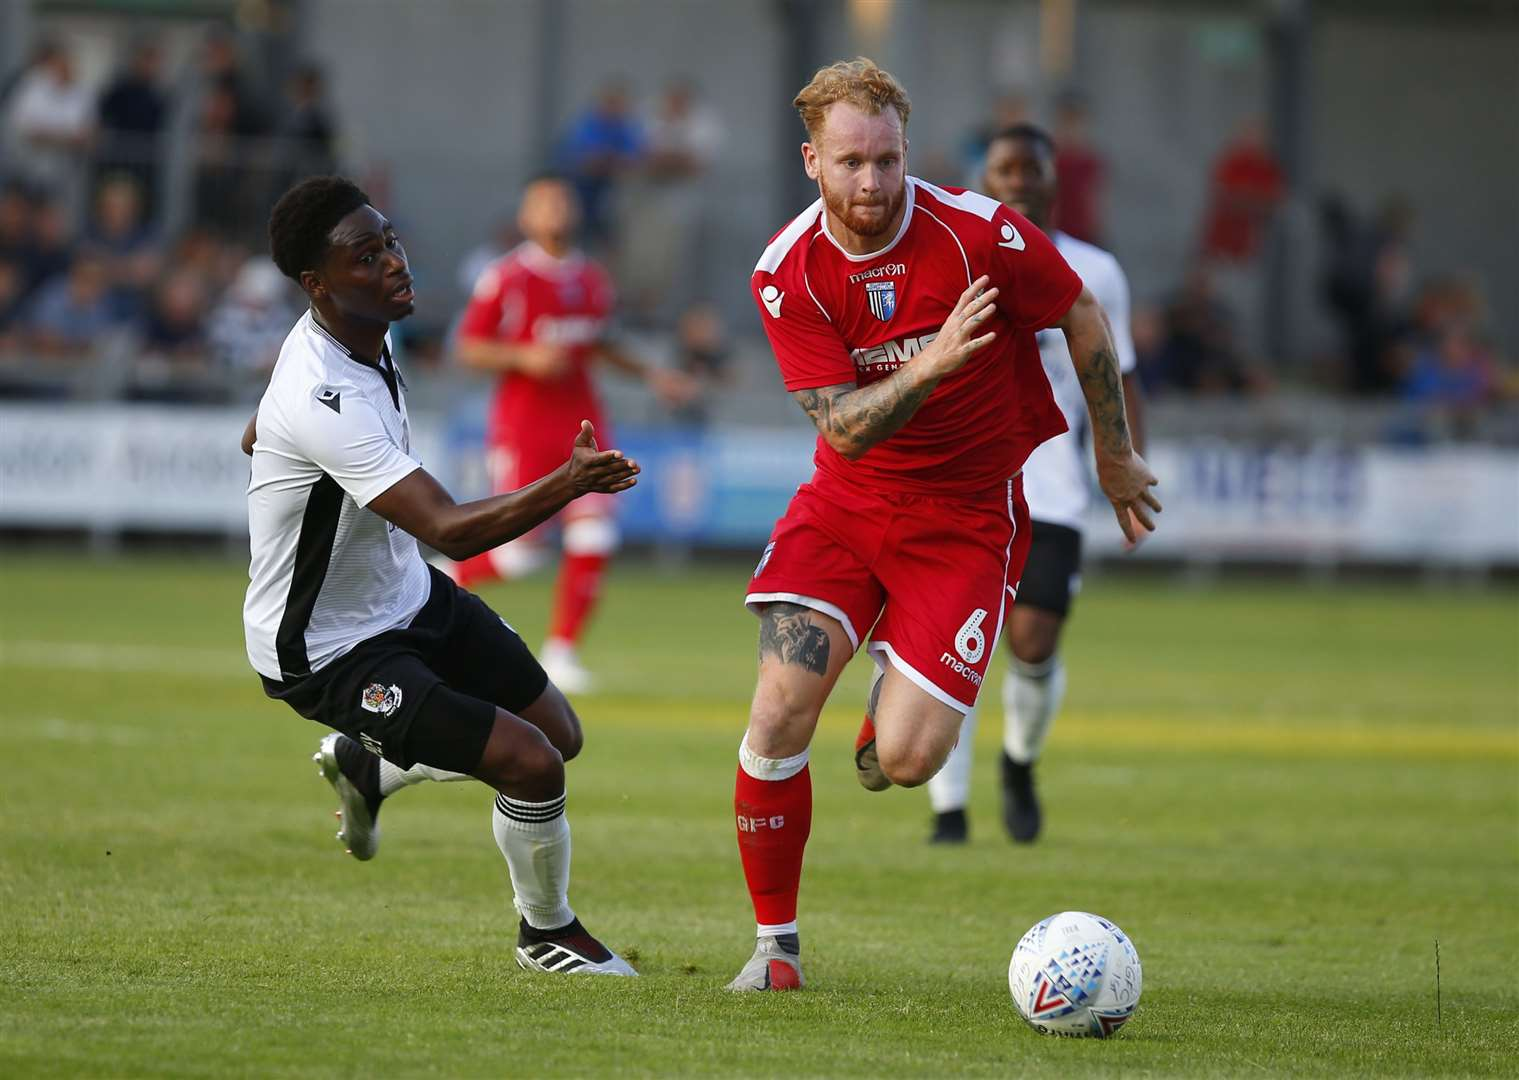 Jordan Wynter and Connor Ogilvie compete for the ball Picture: Andy Jones